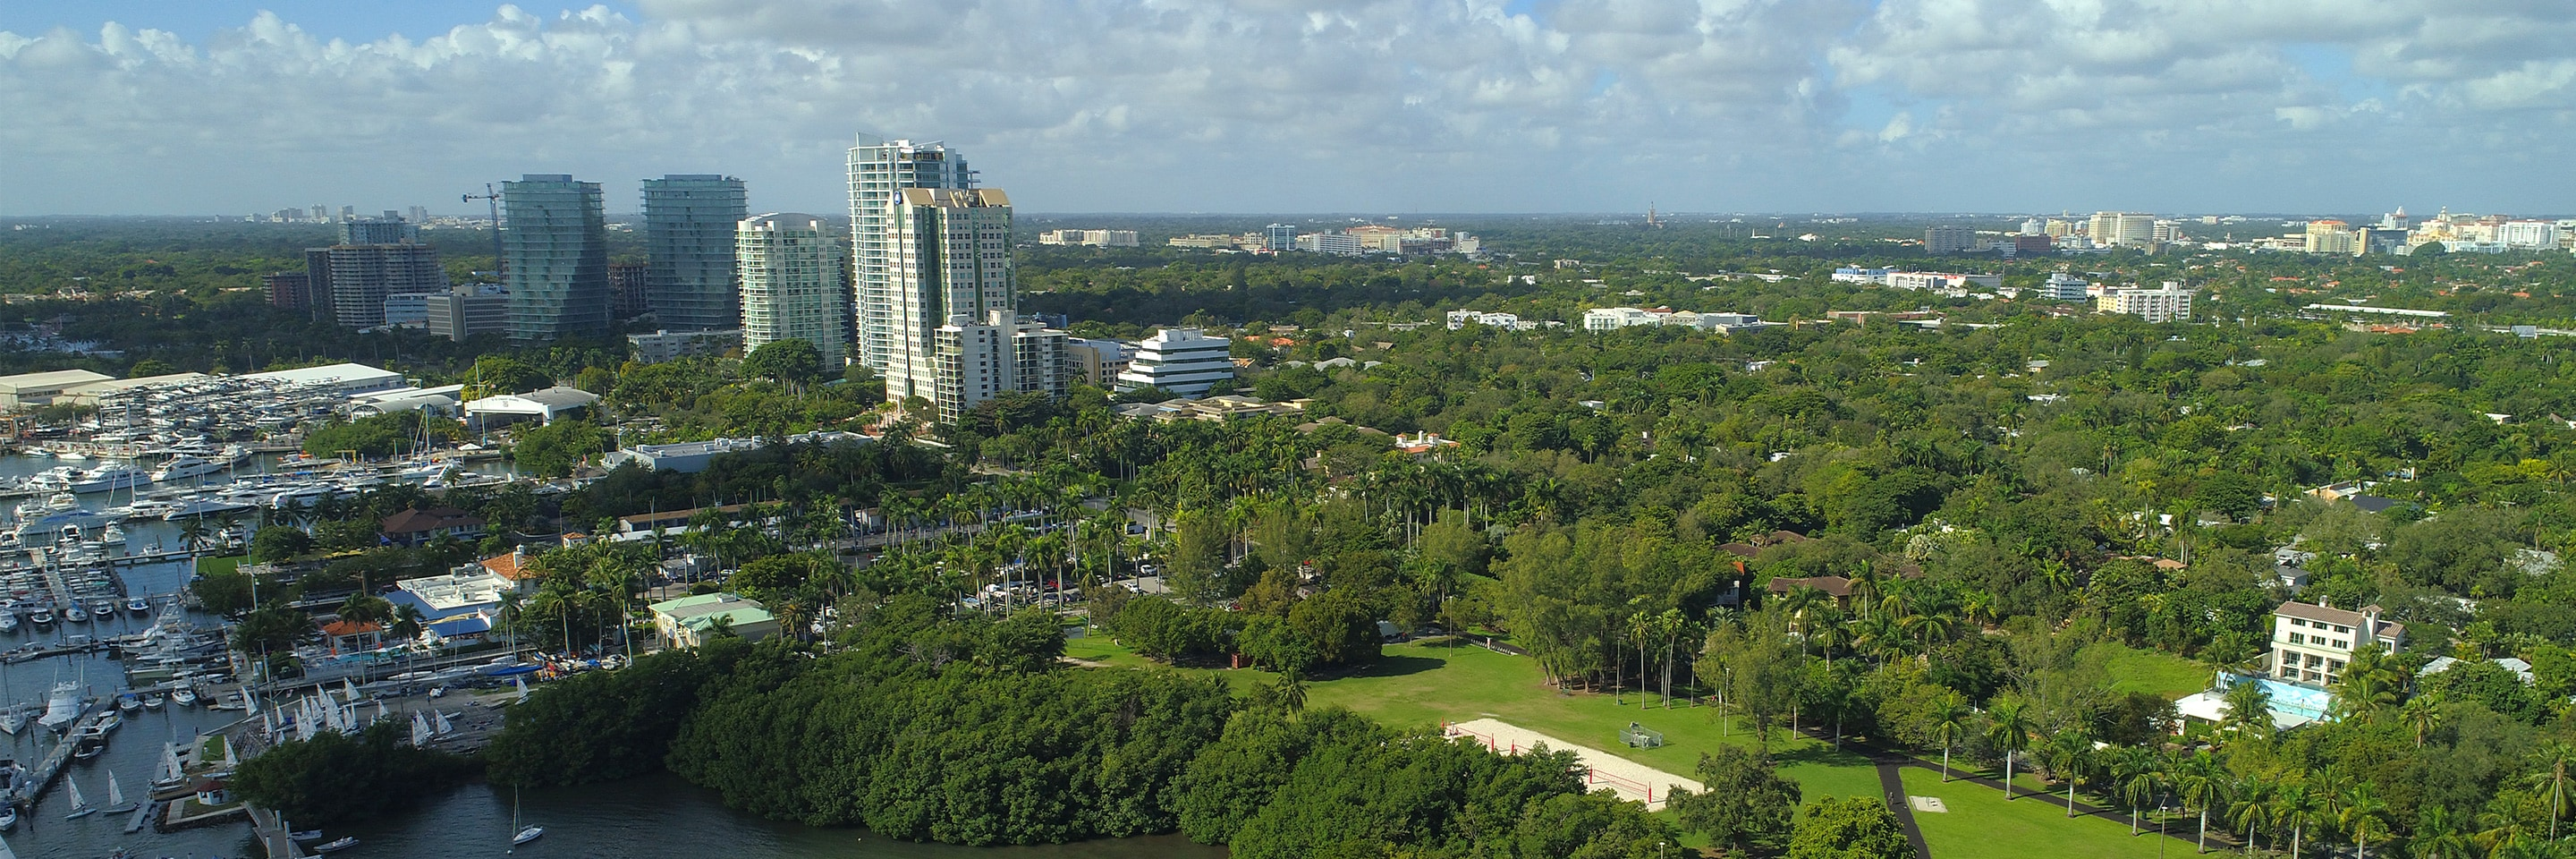 Hotels in Coconut Grove